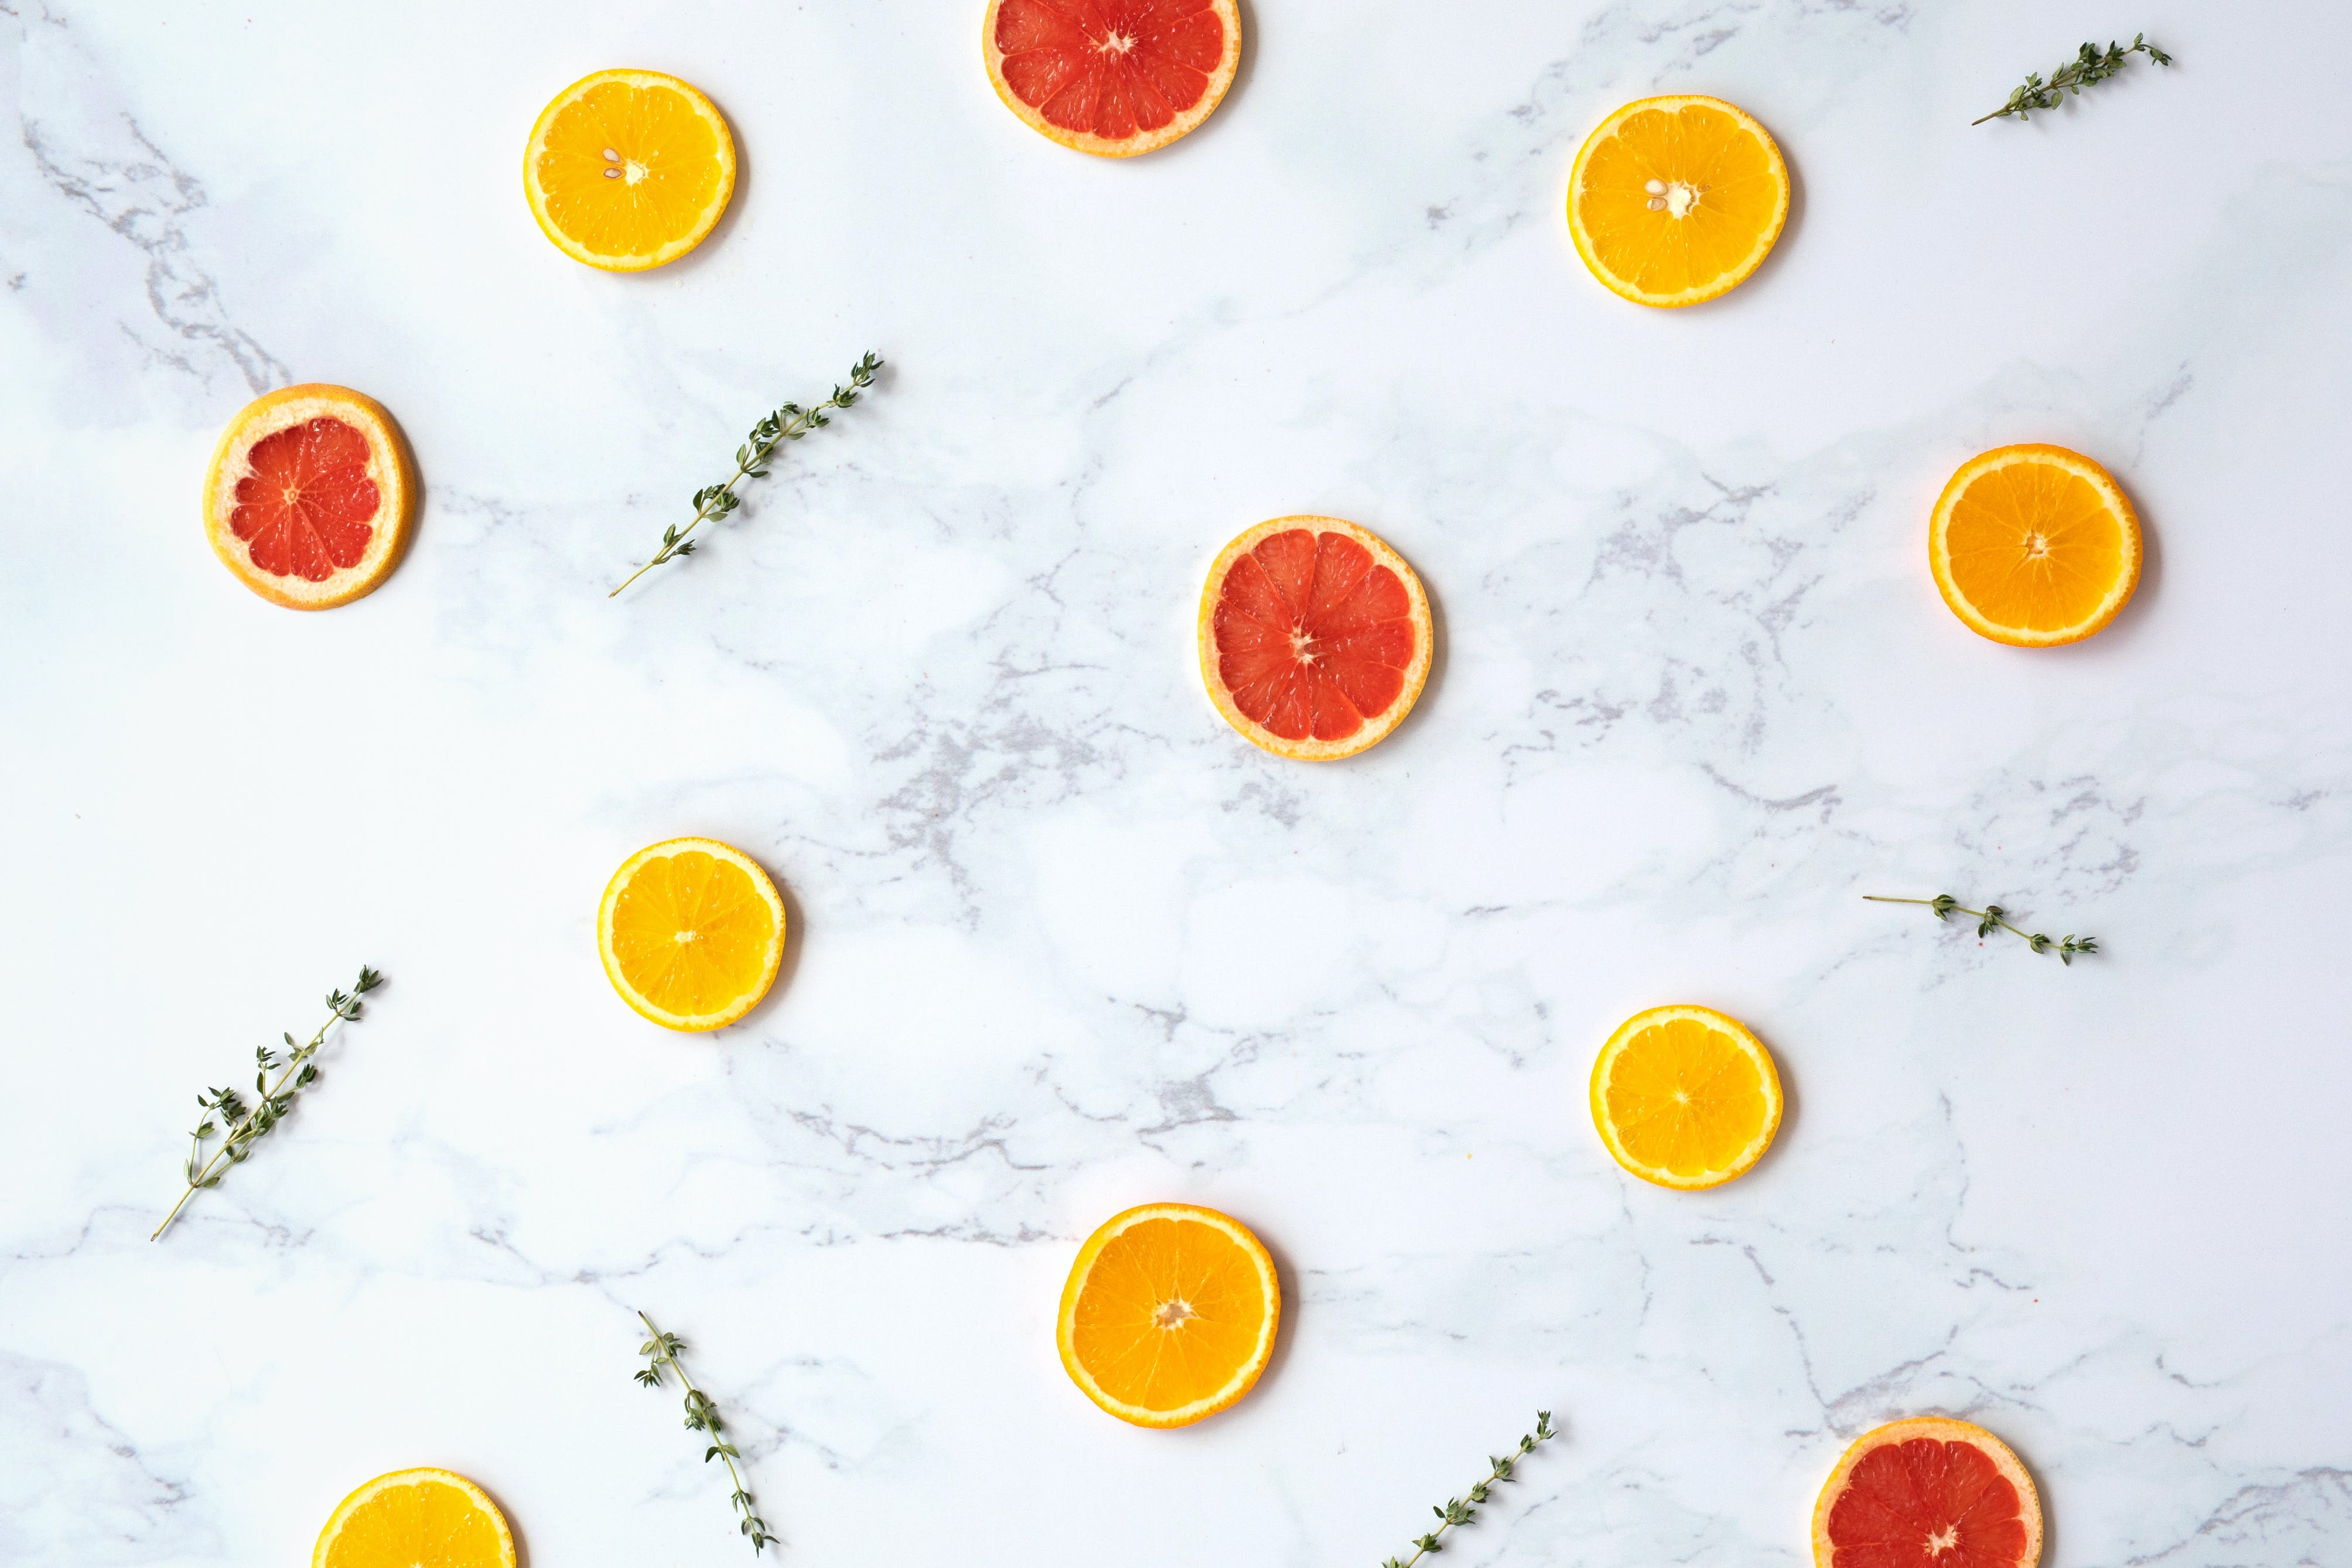 Flatlay Photography Of Sliced Citrus Fruits On Marble Surface